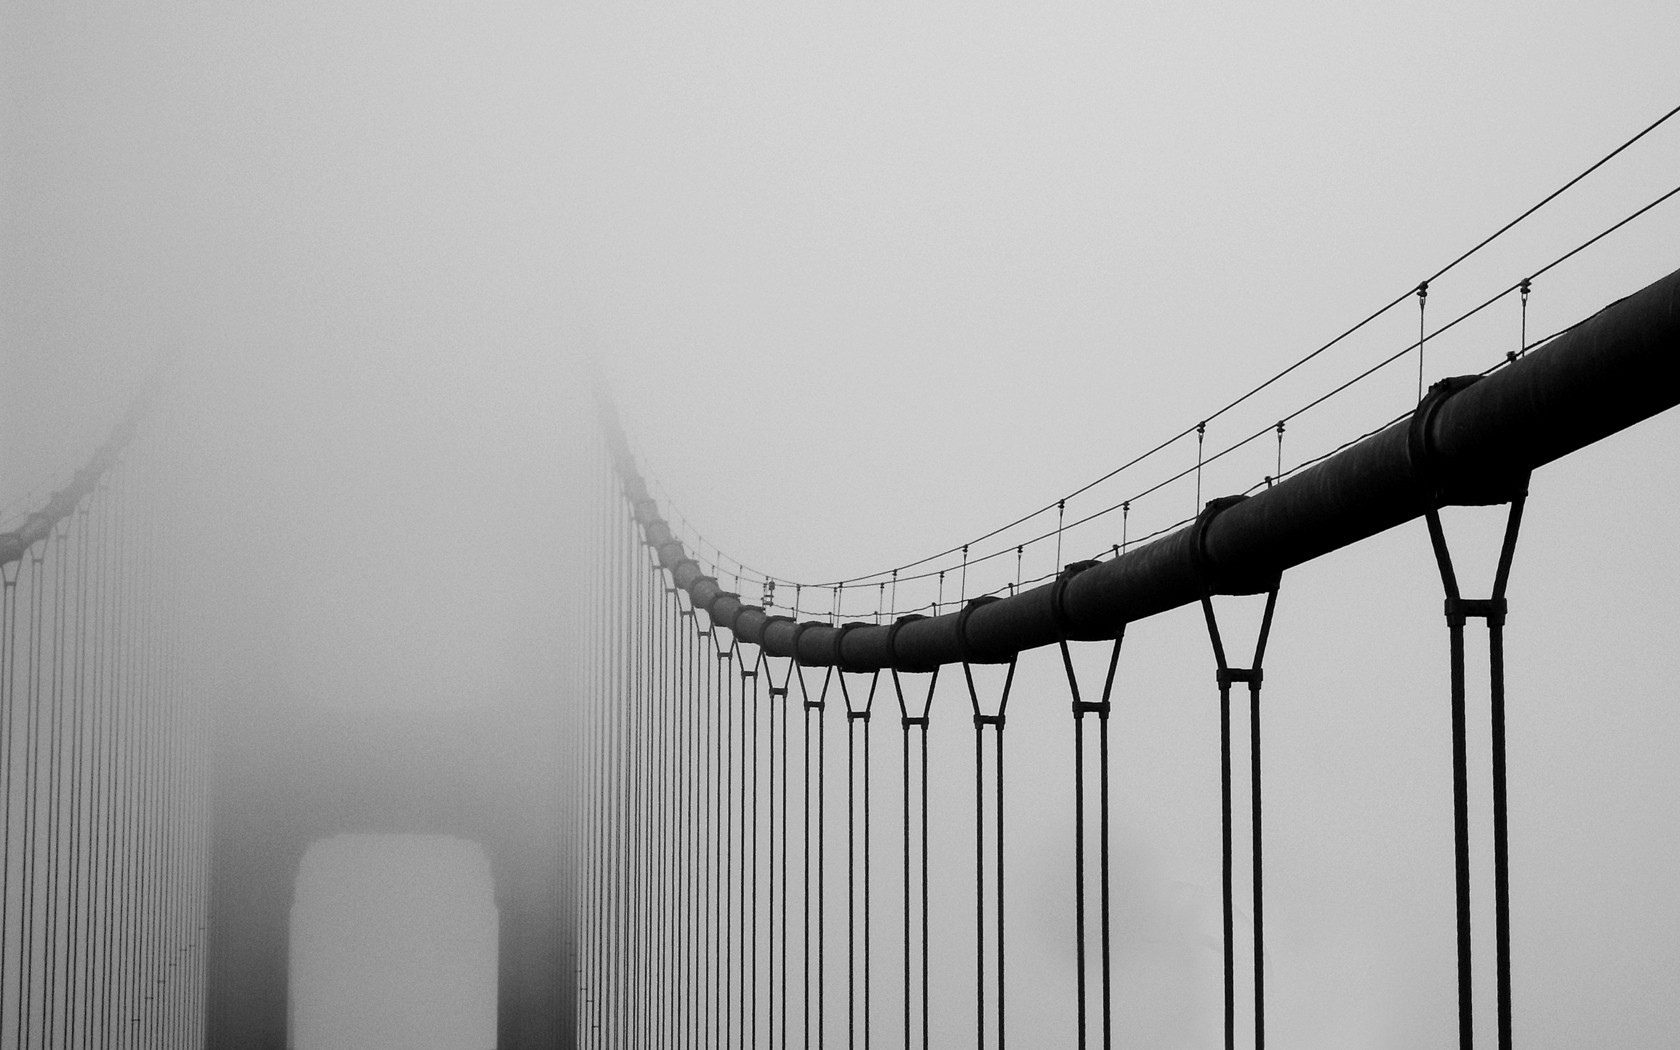 fog Bridges lines